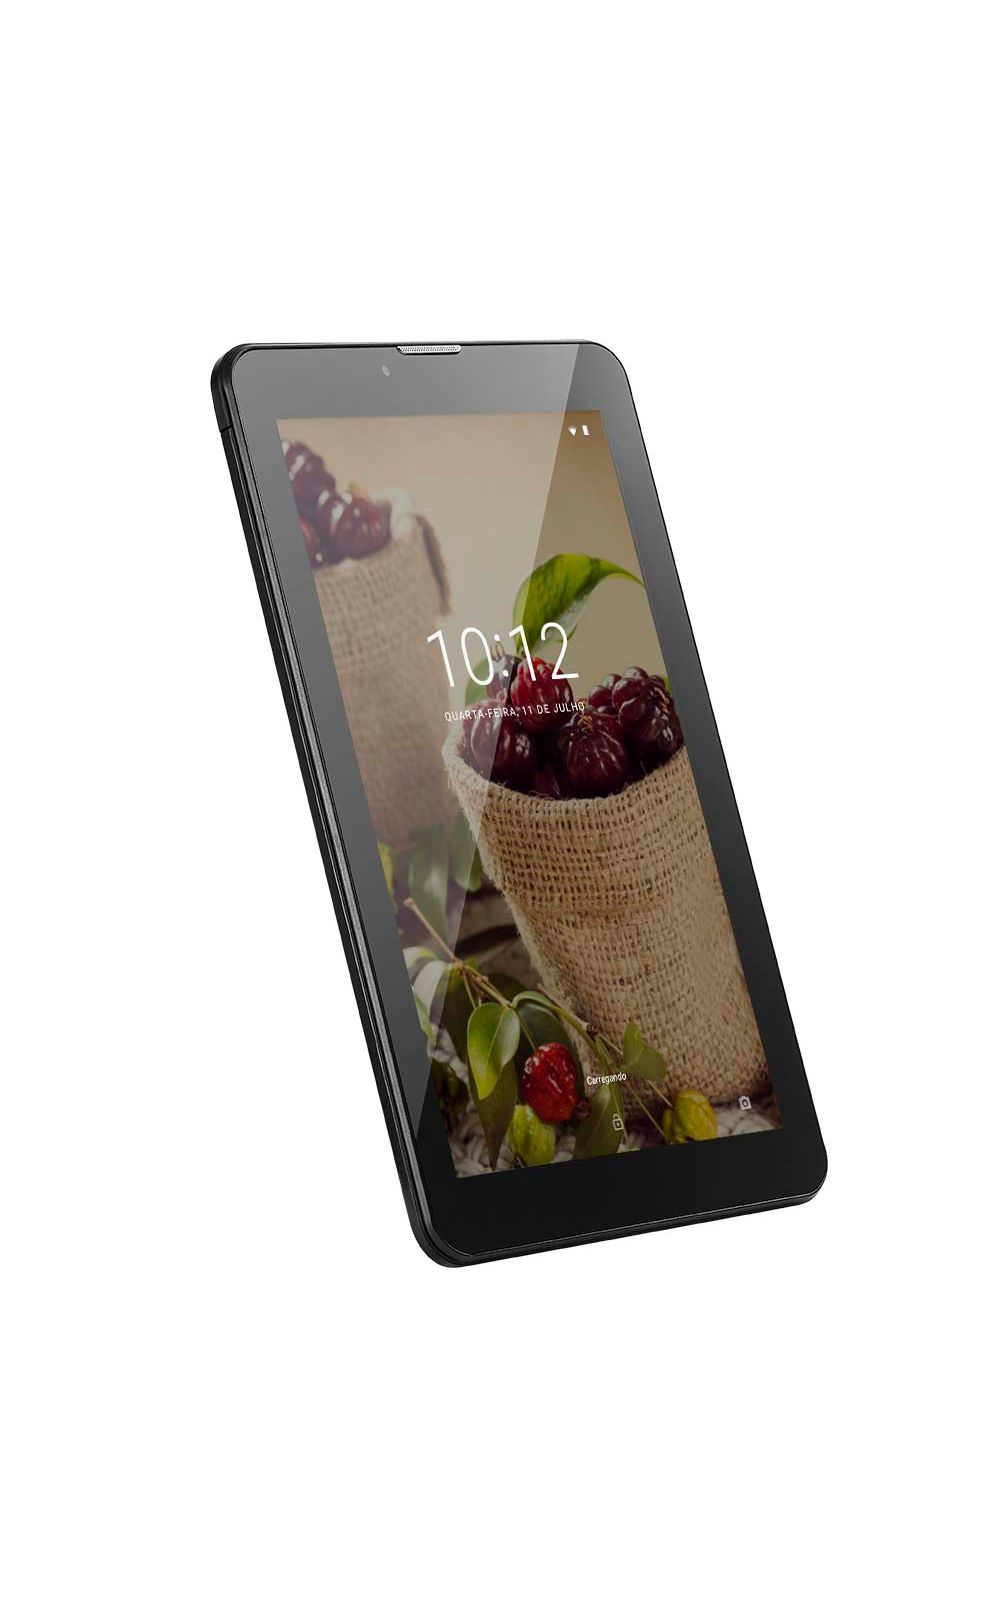 Foto 7 - Tablet Multilaser M7 3G Plus Sênior 1GB 8GB Câmera 2.0 Mp+1.3 Mp Tela 7 Dual Chip Preto - NB294